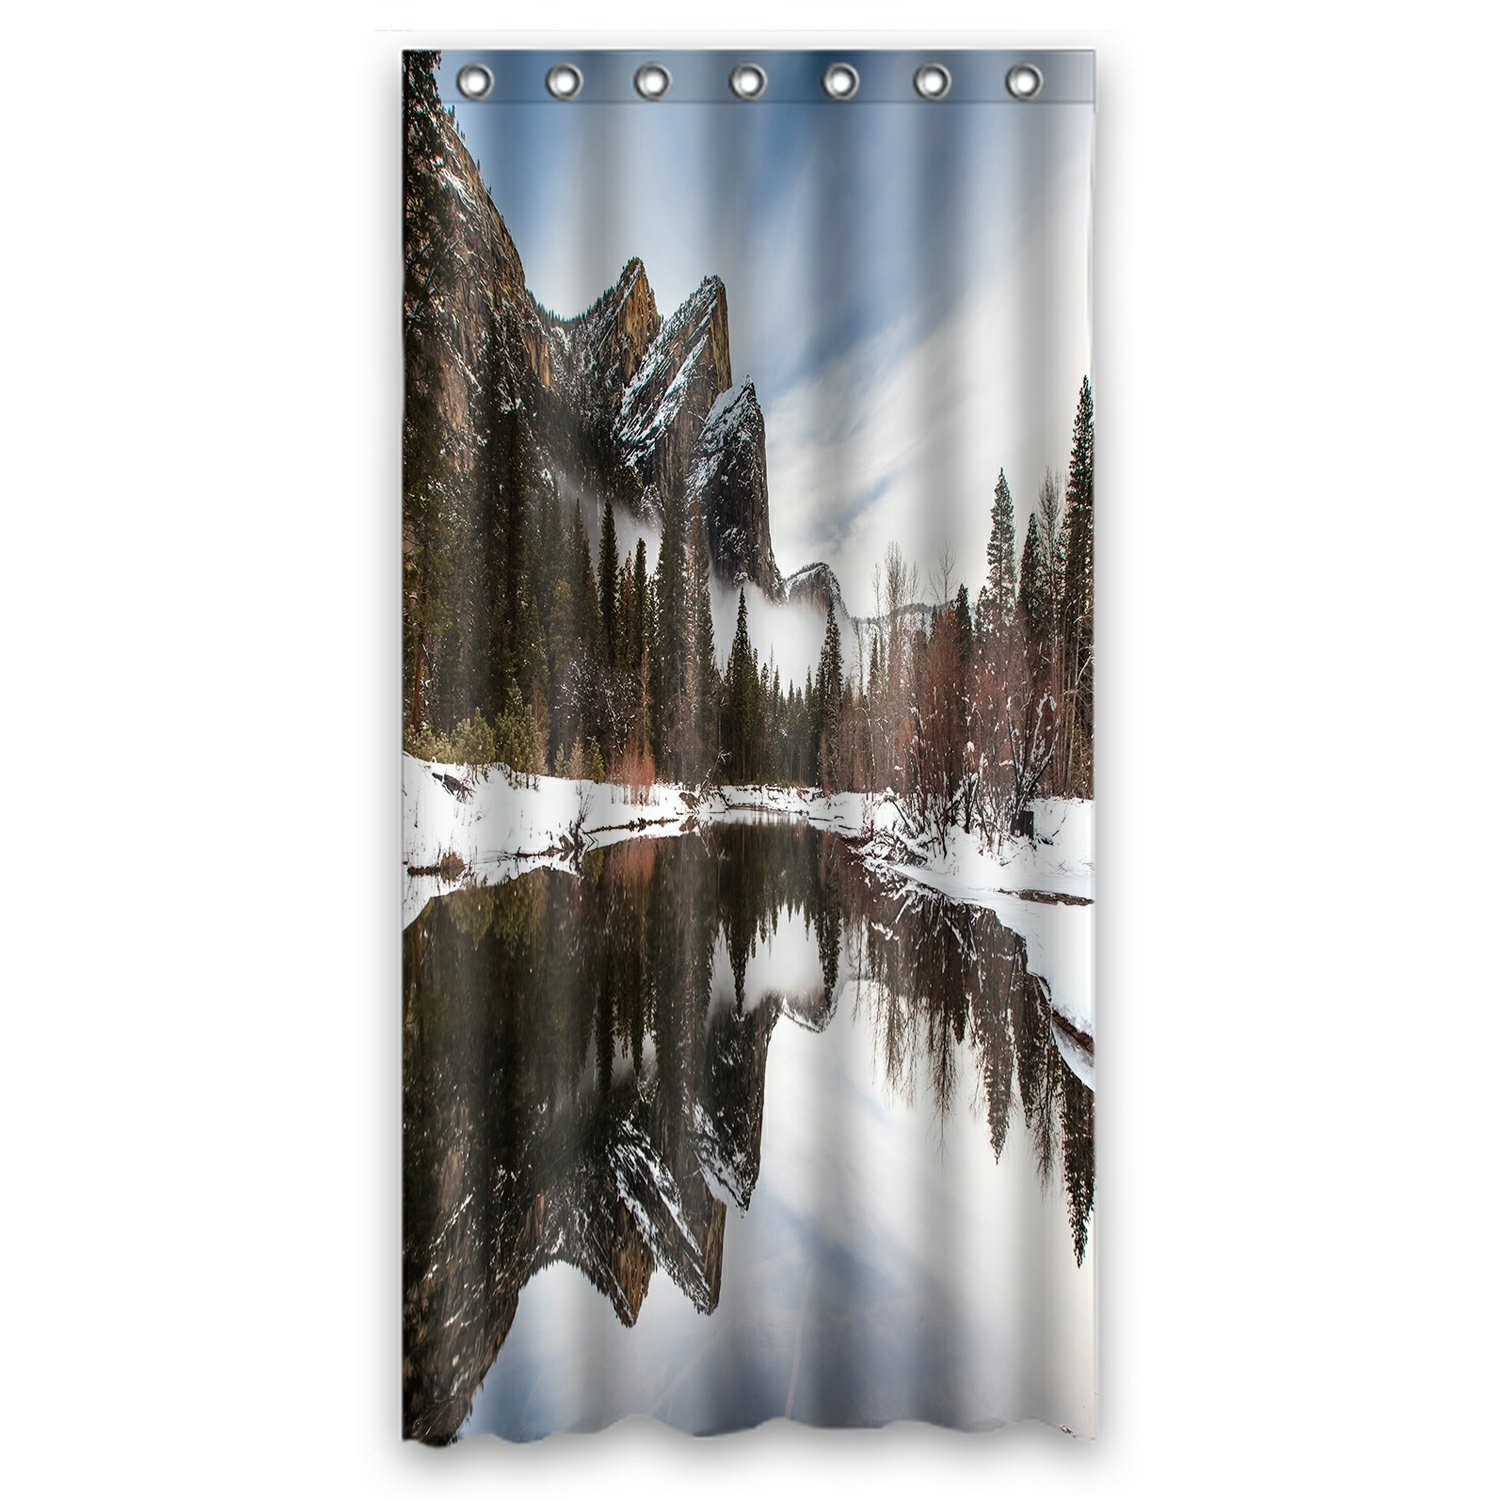 Mountain Lake Trees Shower Curtain, Yosemite National Park Scenery Nature Shower Curtain 36x72 inch